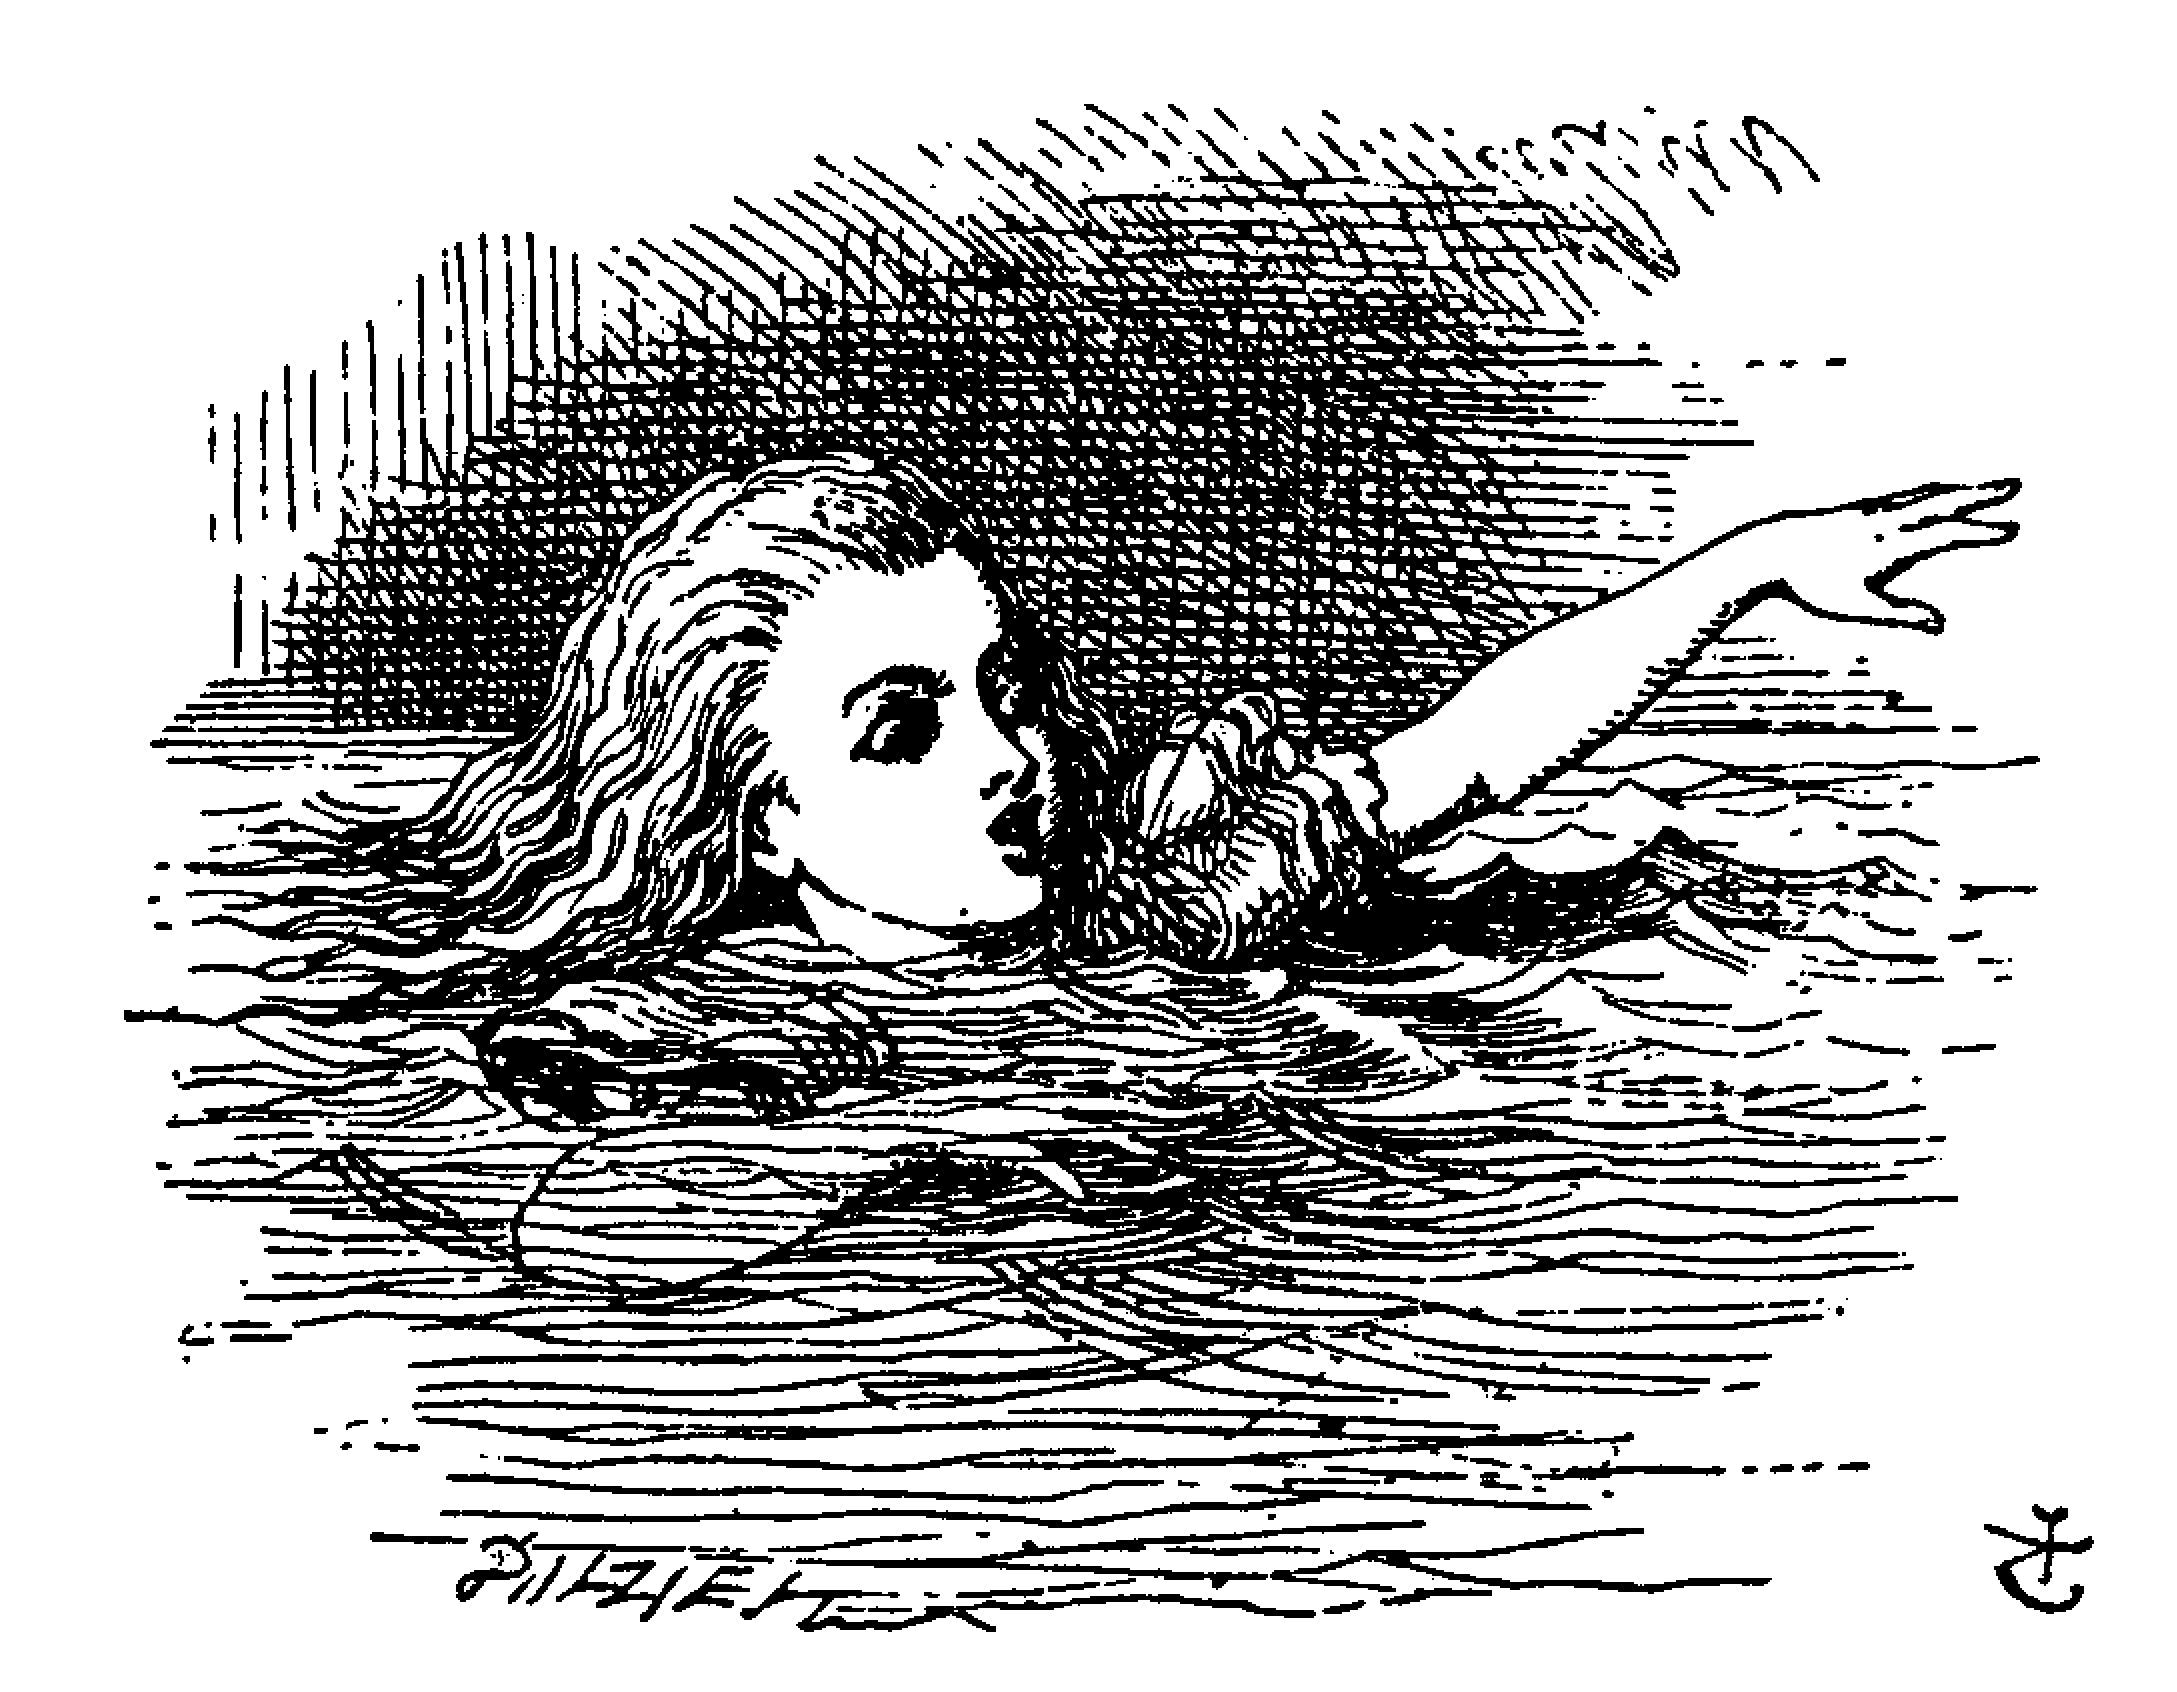 Illustration by John Tenniel from Alice's Adventures in Wonderland. Alice is pictured drowning in a pool of tears with one arm stretched high.